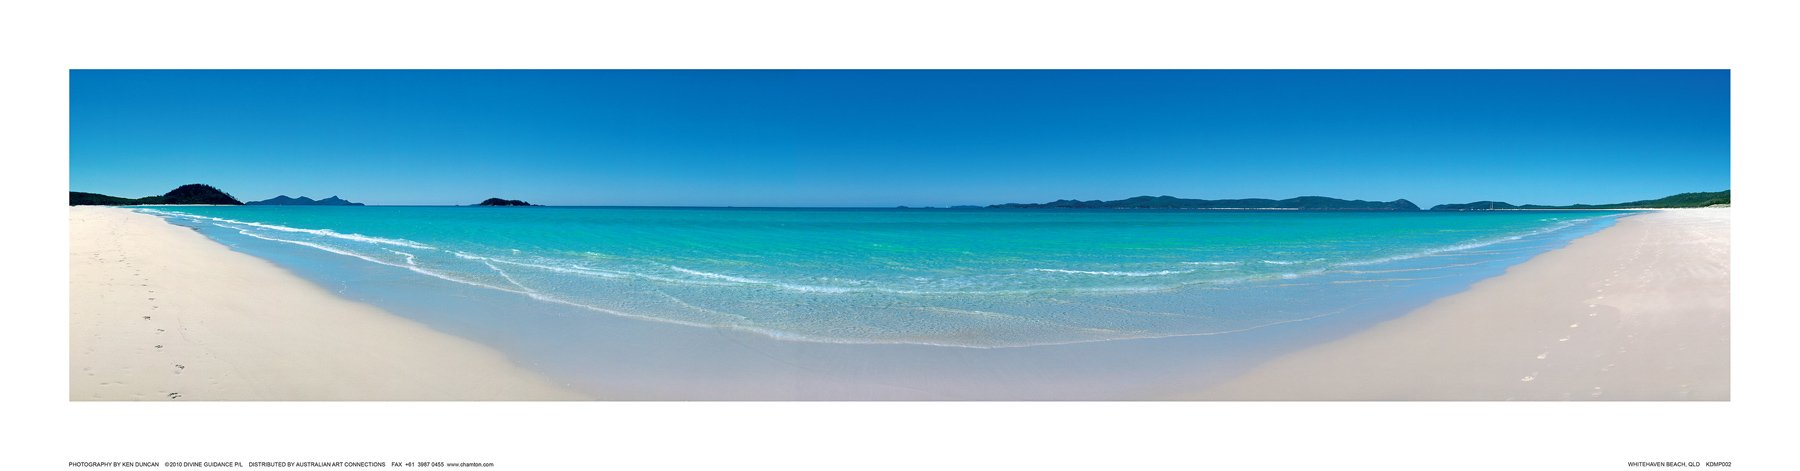 Whitehaven Beach, QLD